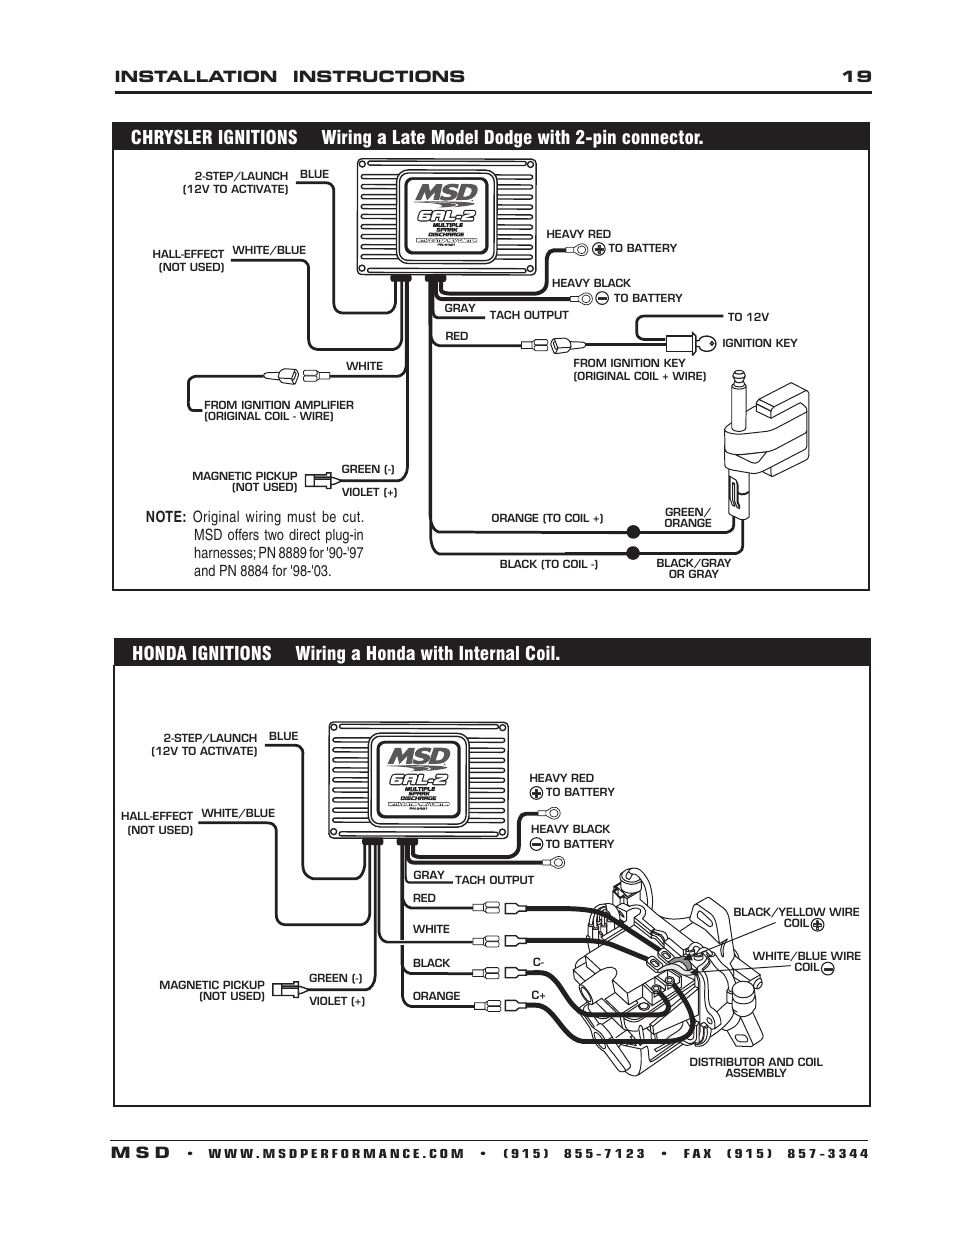 Honda Ignitions Wiring A Honda With Internal Coil  Installation Instructions 19 M S D